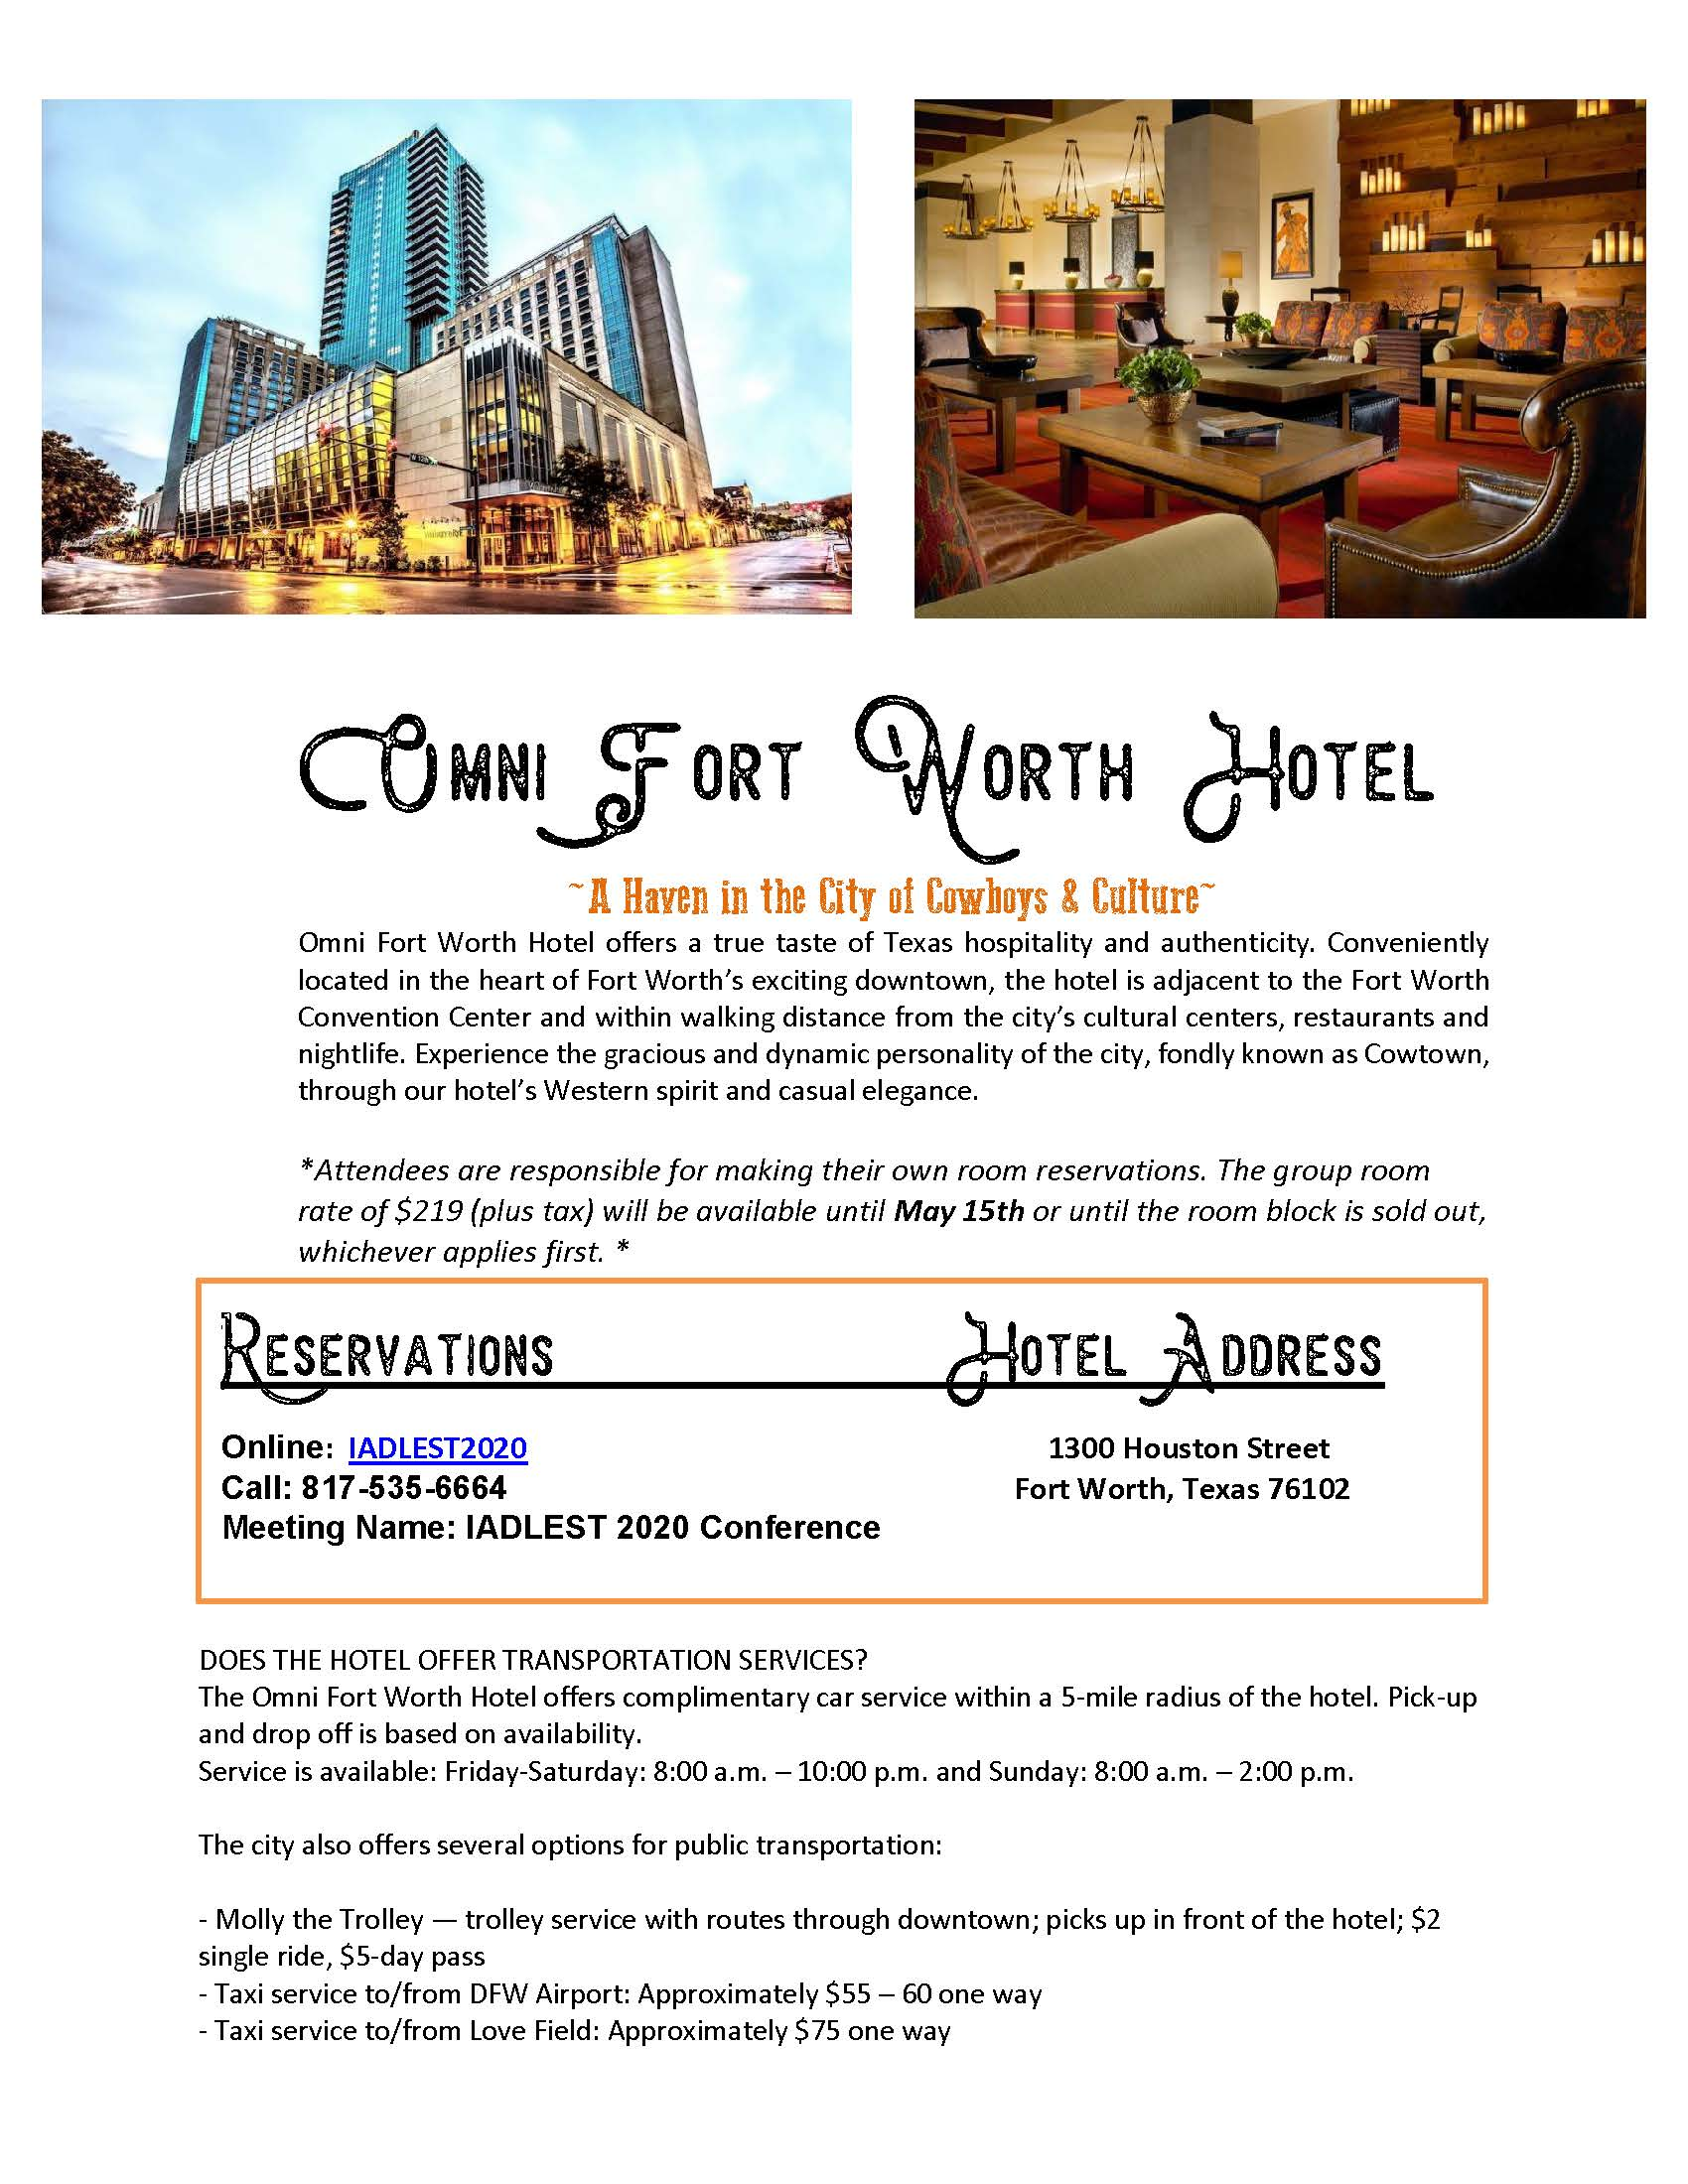 Lodging information Omni